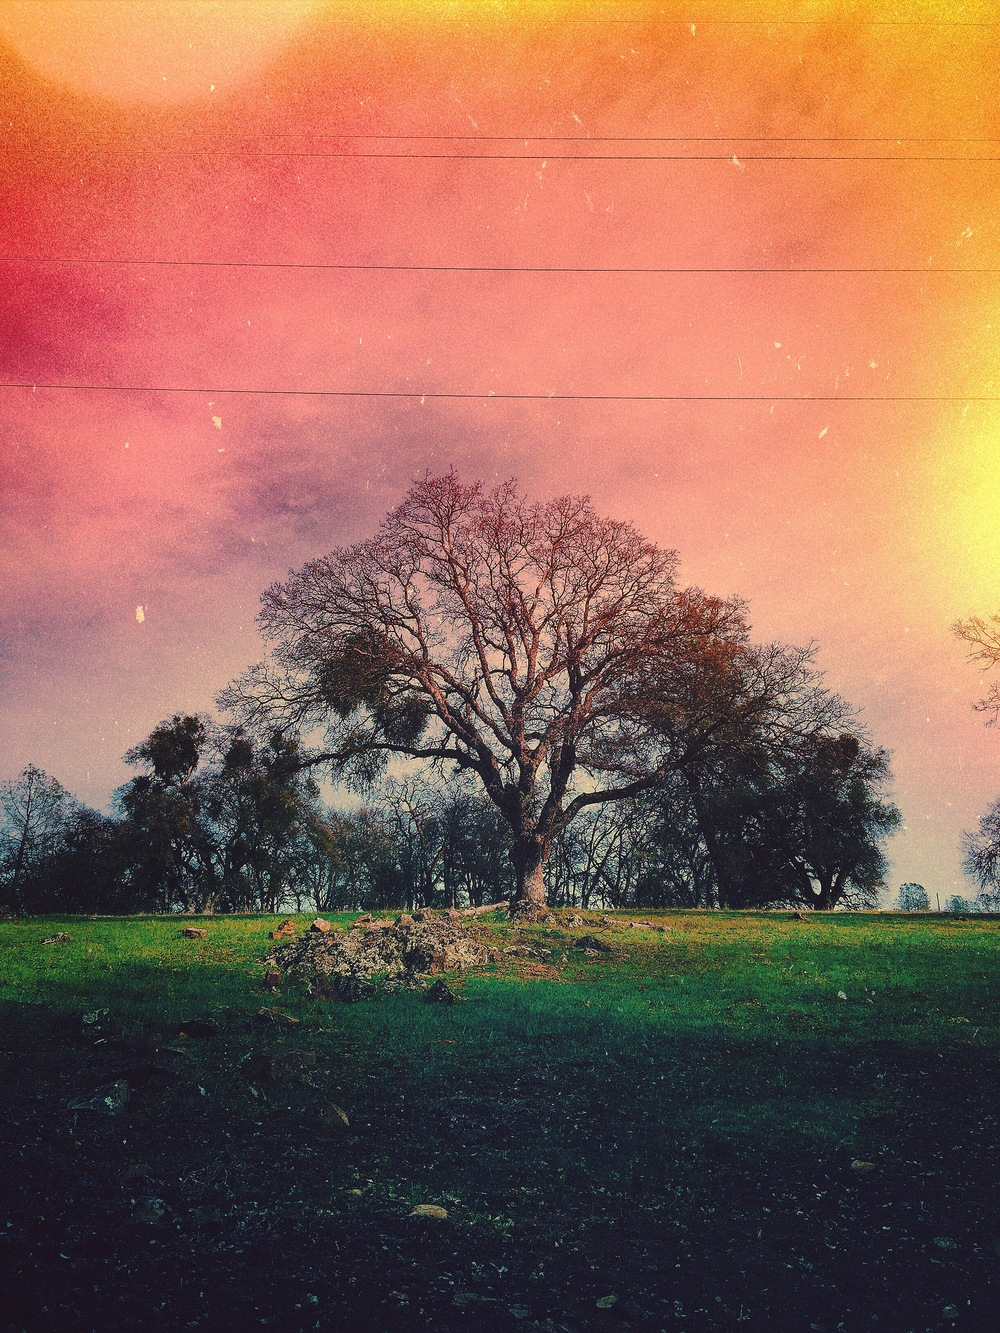 Photo by Ciera Lagges in Auburn, California edited with Mextures App and VSCO.